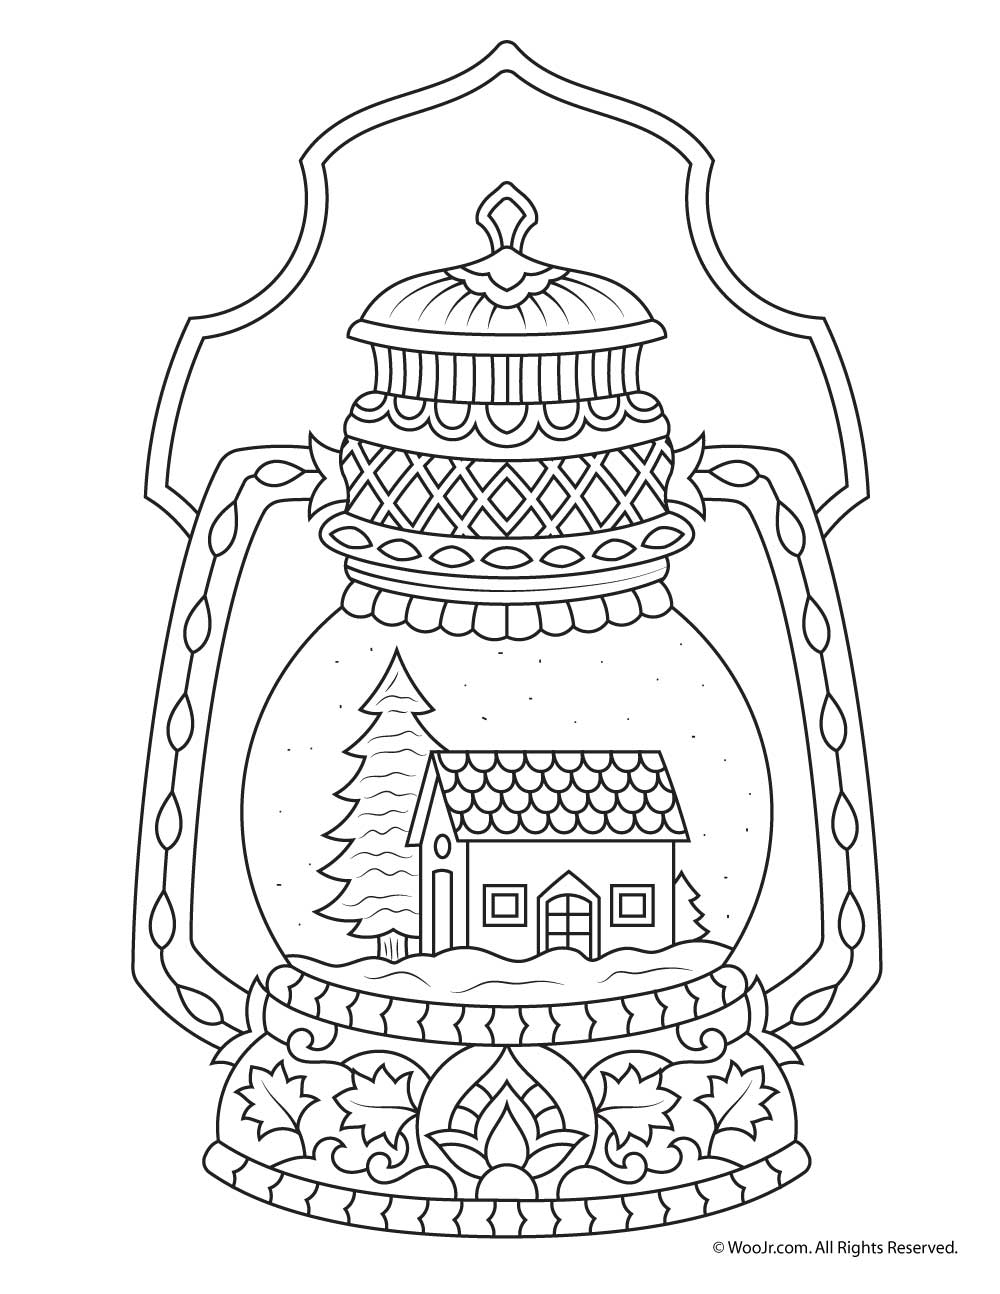 Snow Globe Coloring Page Winter Snow Globe Adult Coloring Page  Woo Jrkids Activities